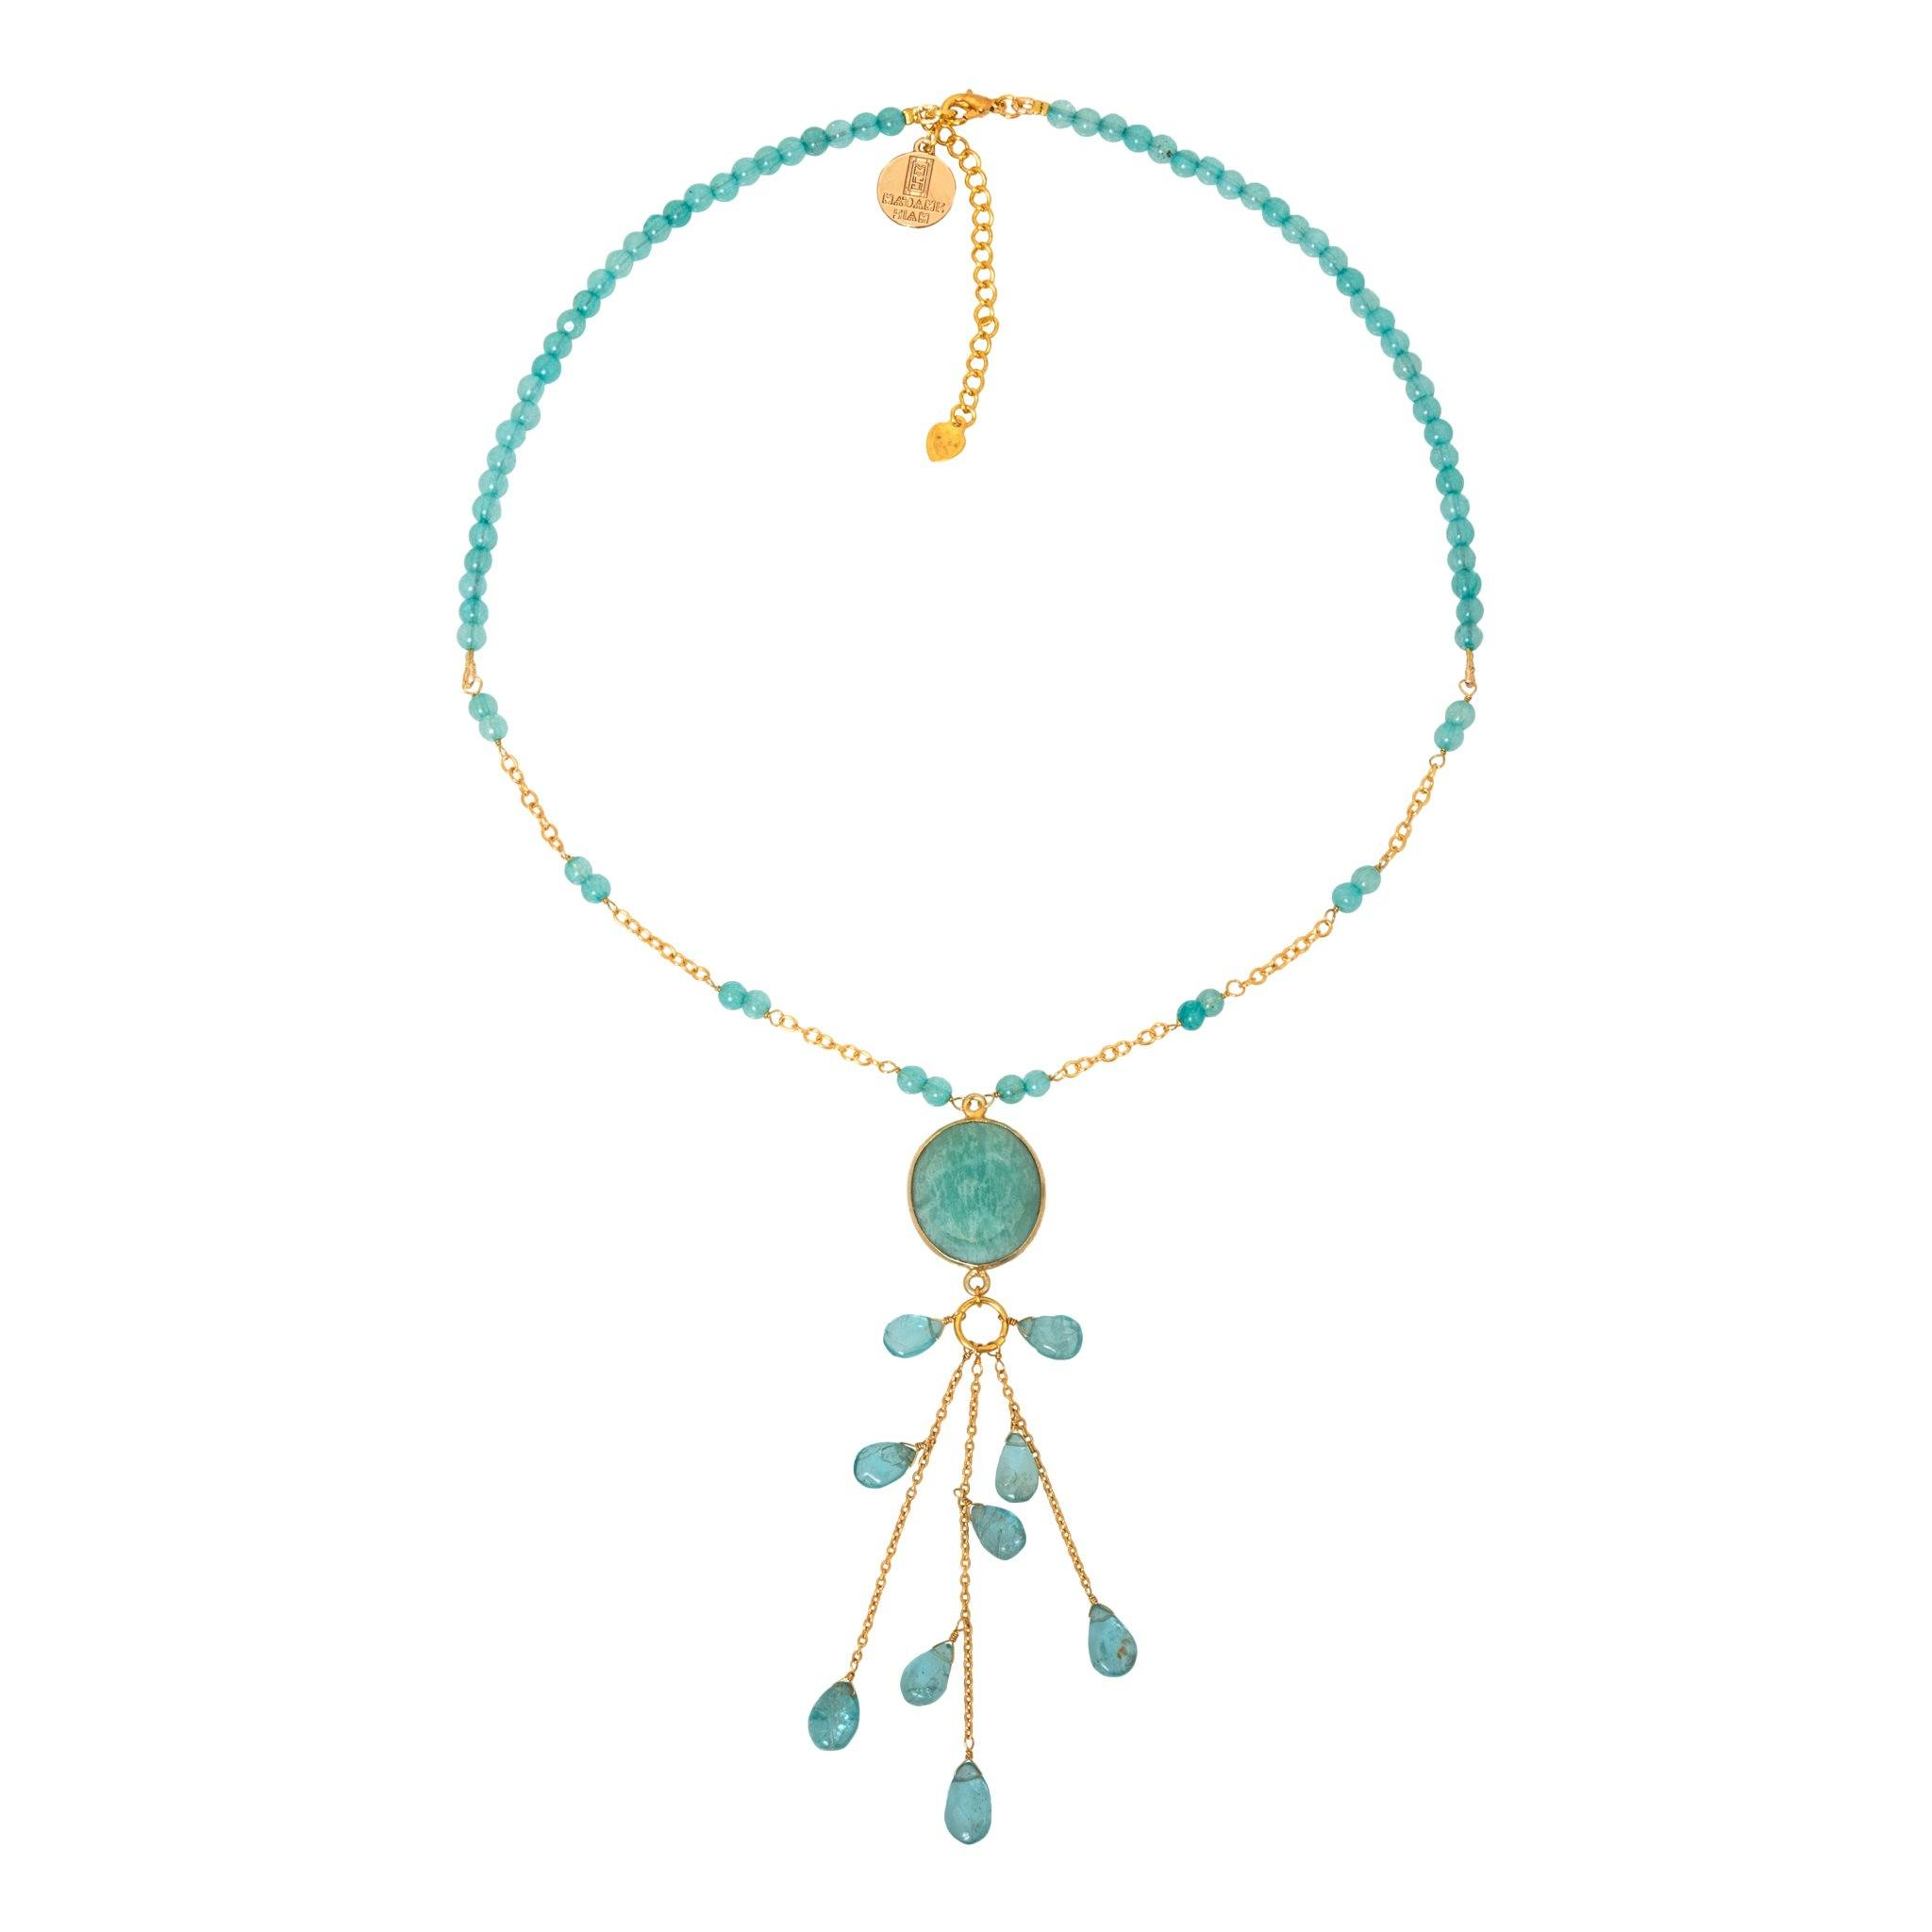 LUZ apatite chocker with drops - MadamSiam